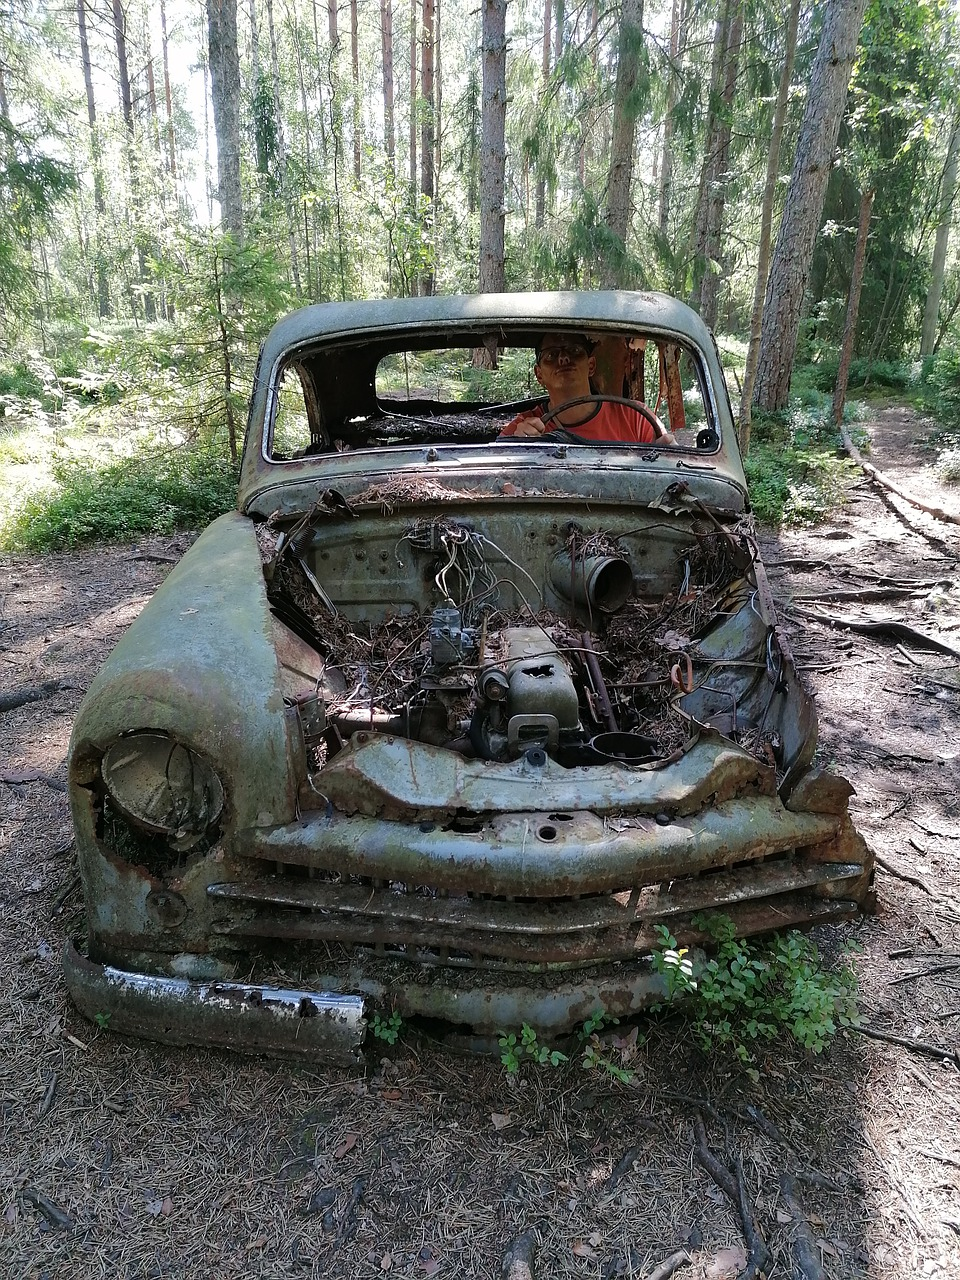 Sell Car For Scrap near Melrose MA